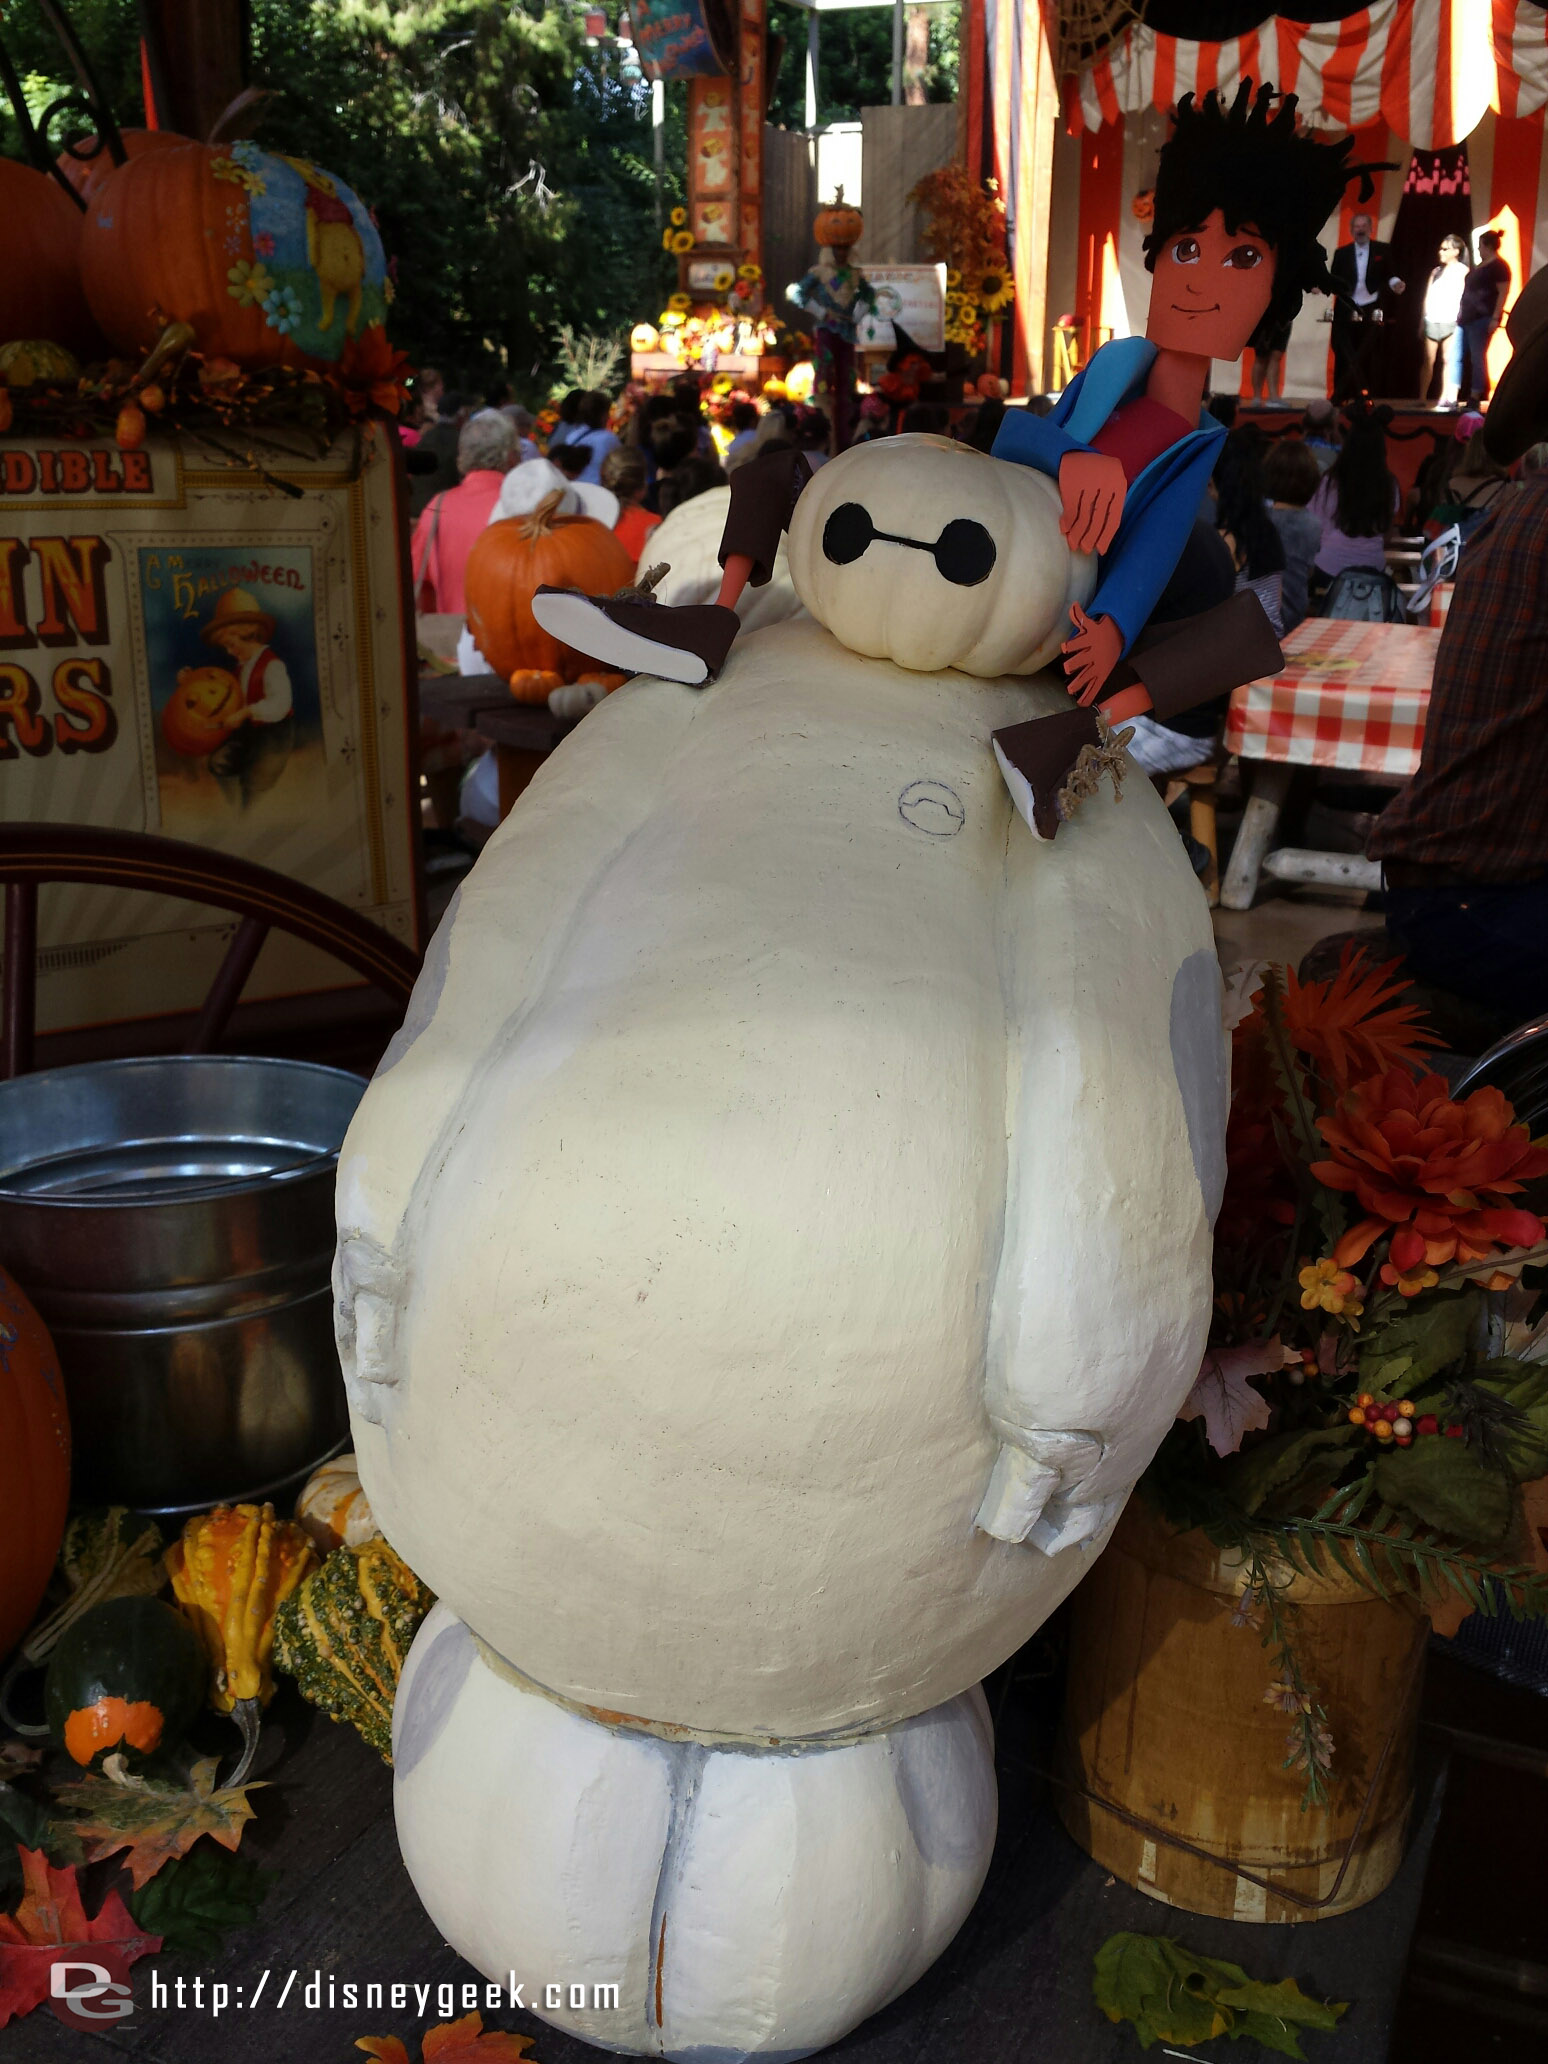 #Baymax pumpkin with Hiro #BigHero6 #Disneyland #HalloweenTime